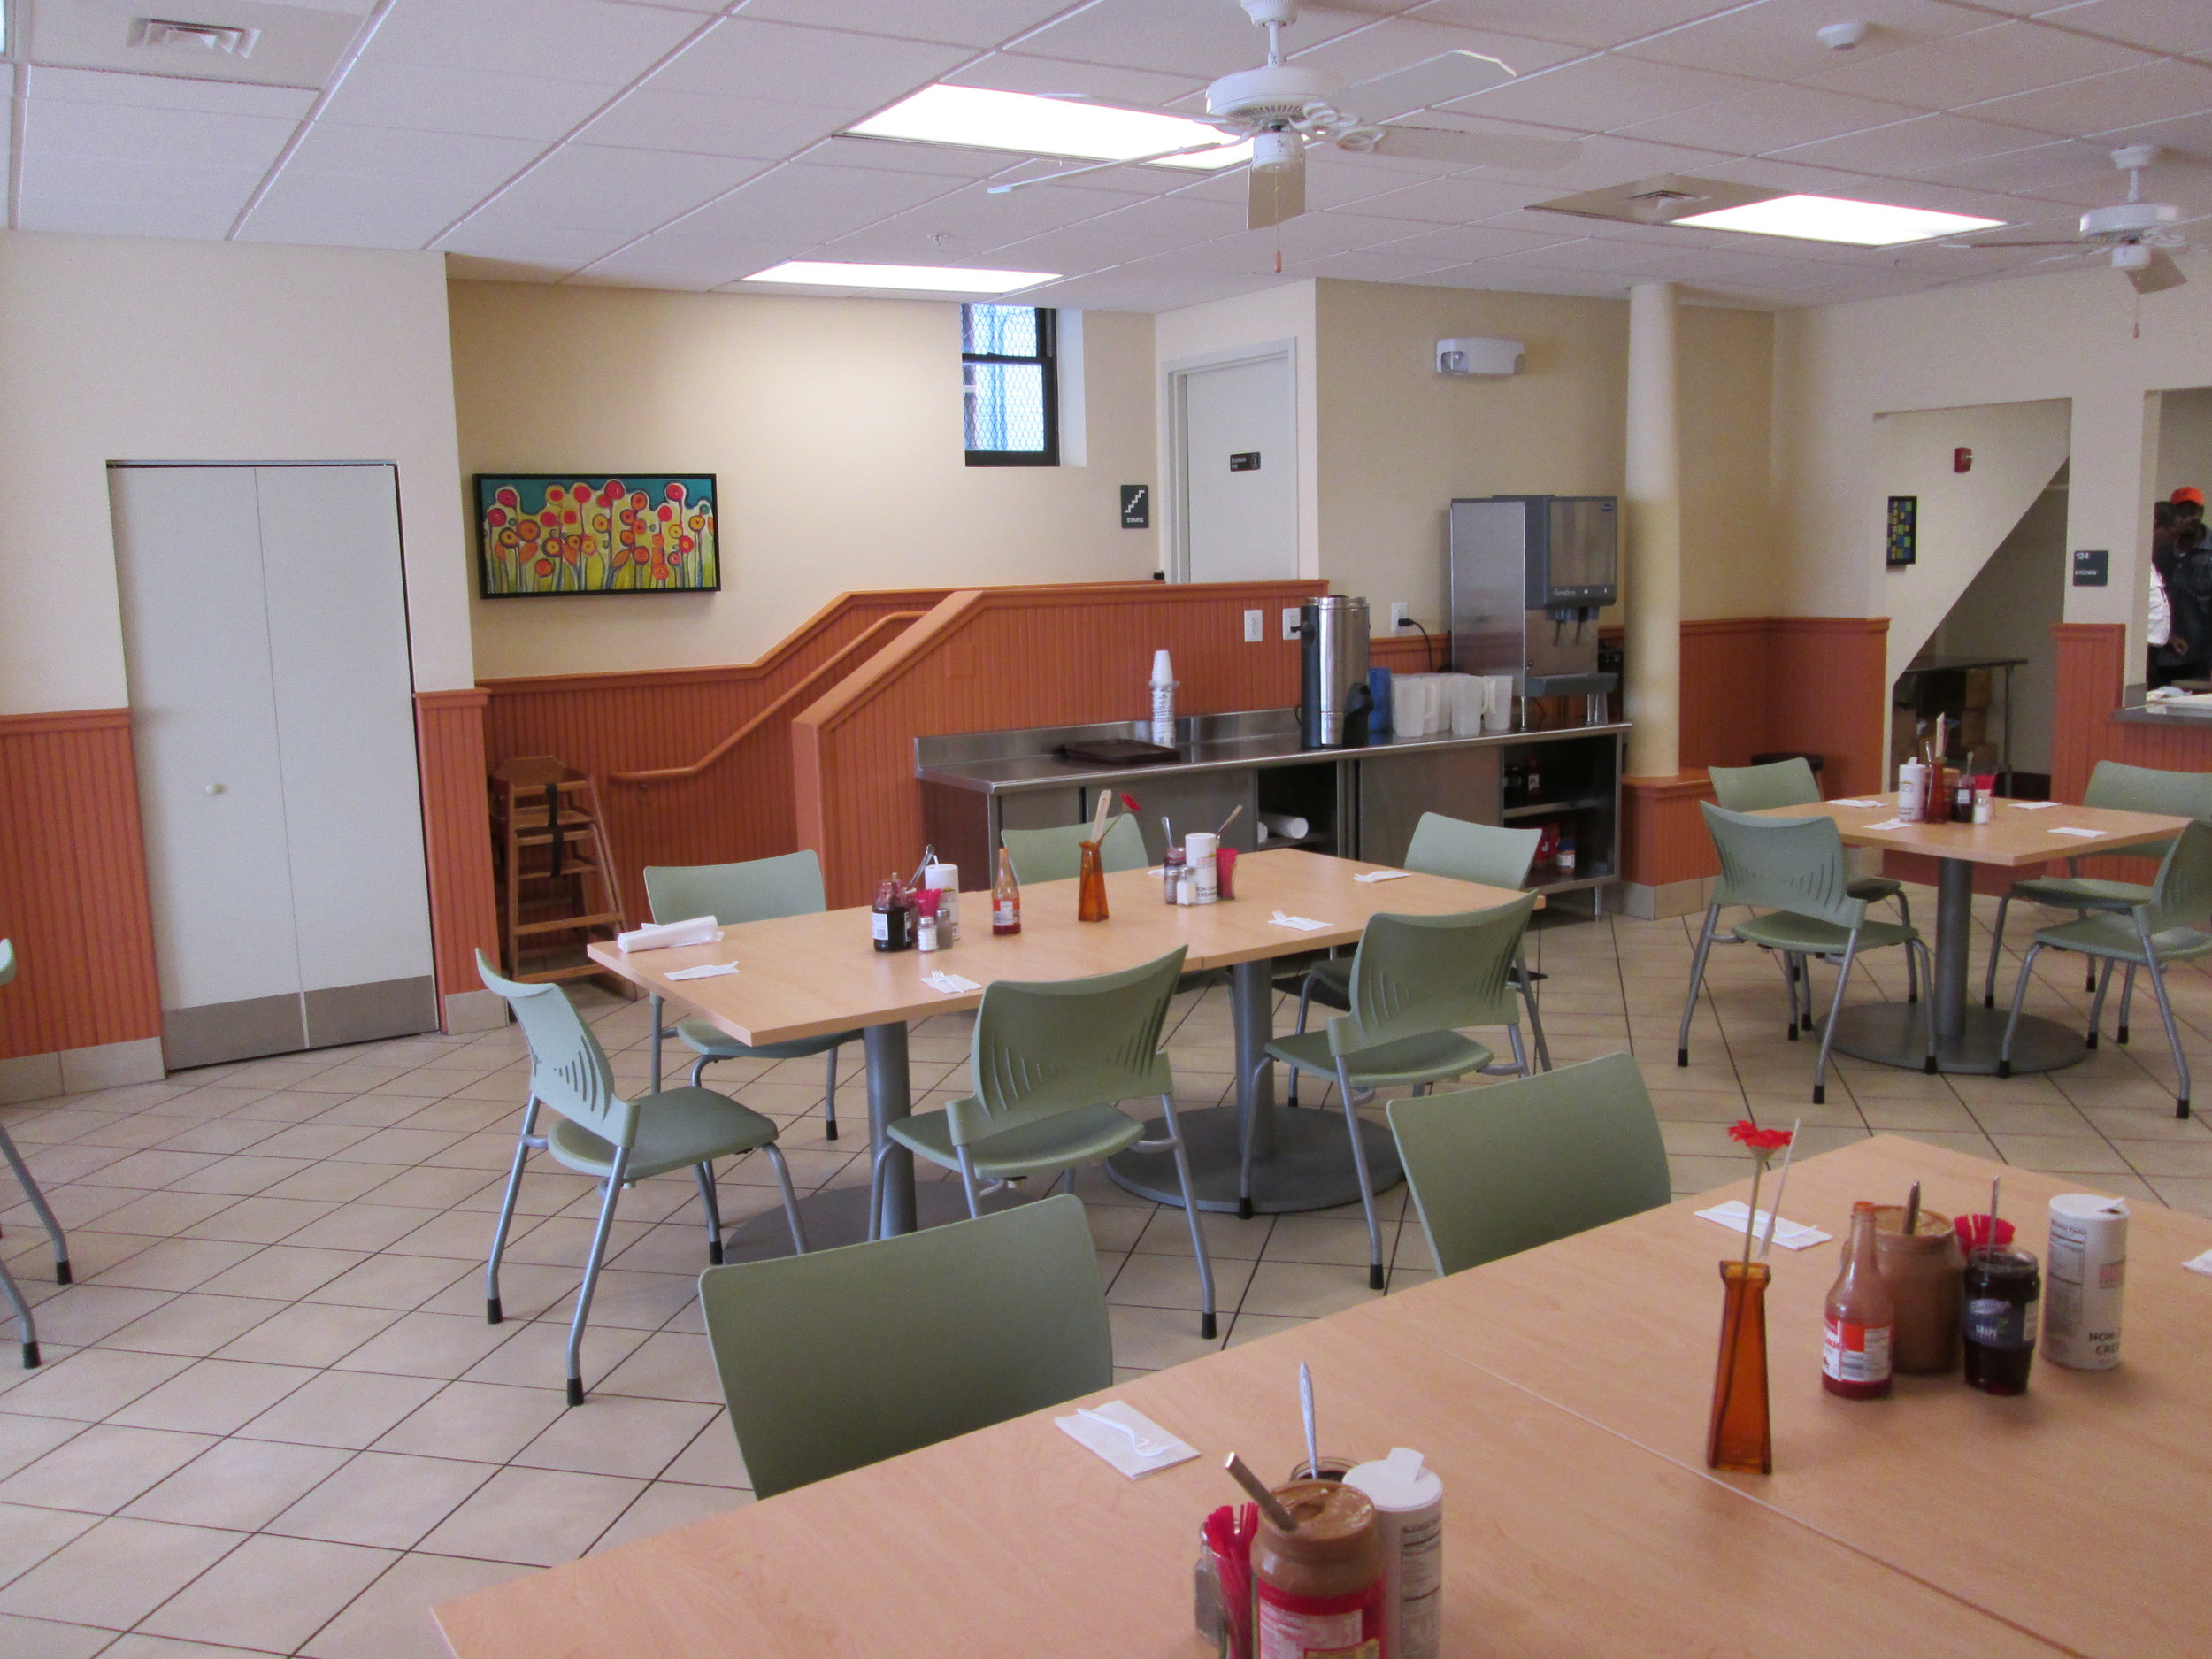 """Volunteers serve 300 meals daily at the """"Beans and Bread"""" building in Fells Point."""